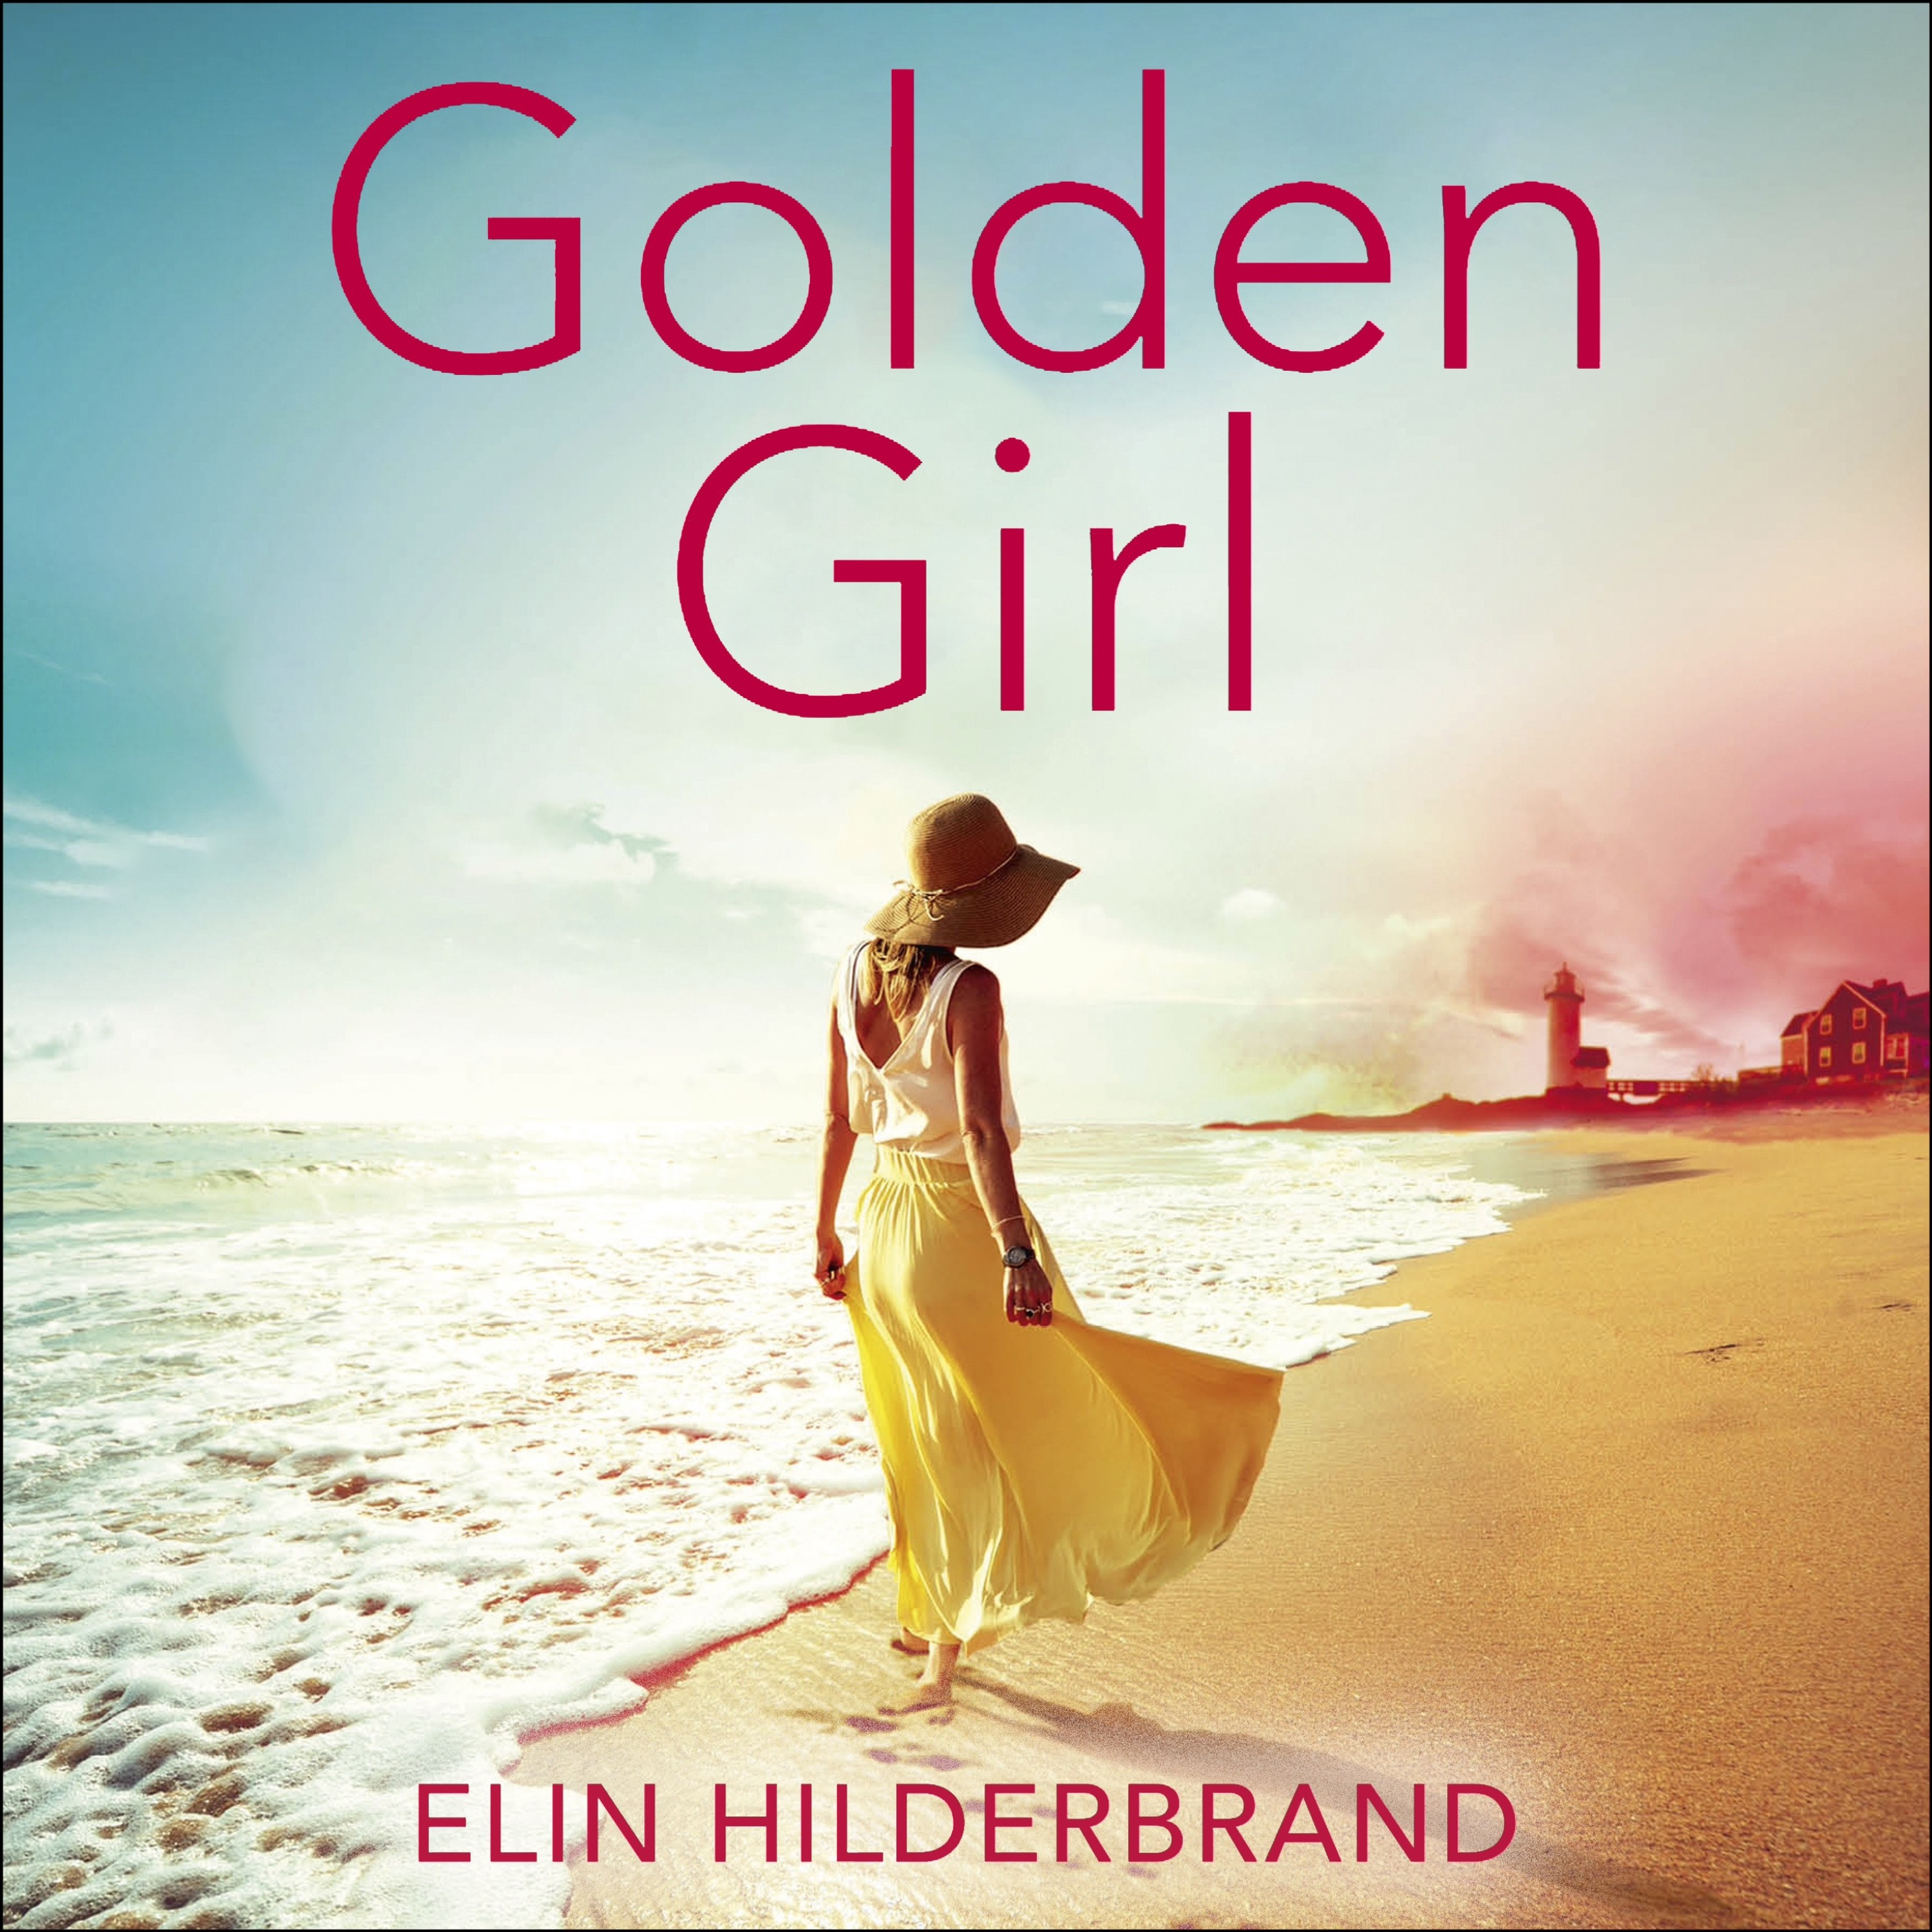 GOLDEN GIRL by Elin Hildebrand, read by Laurence Bouvard - audiobook extract